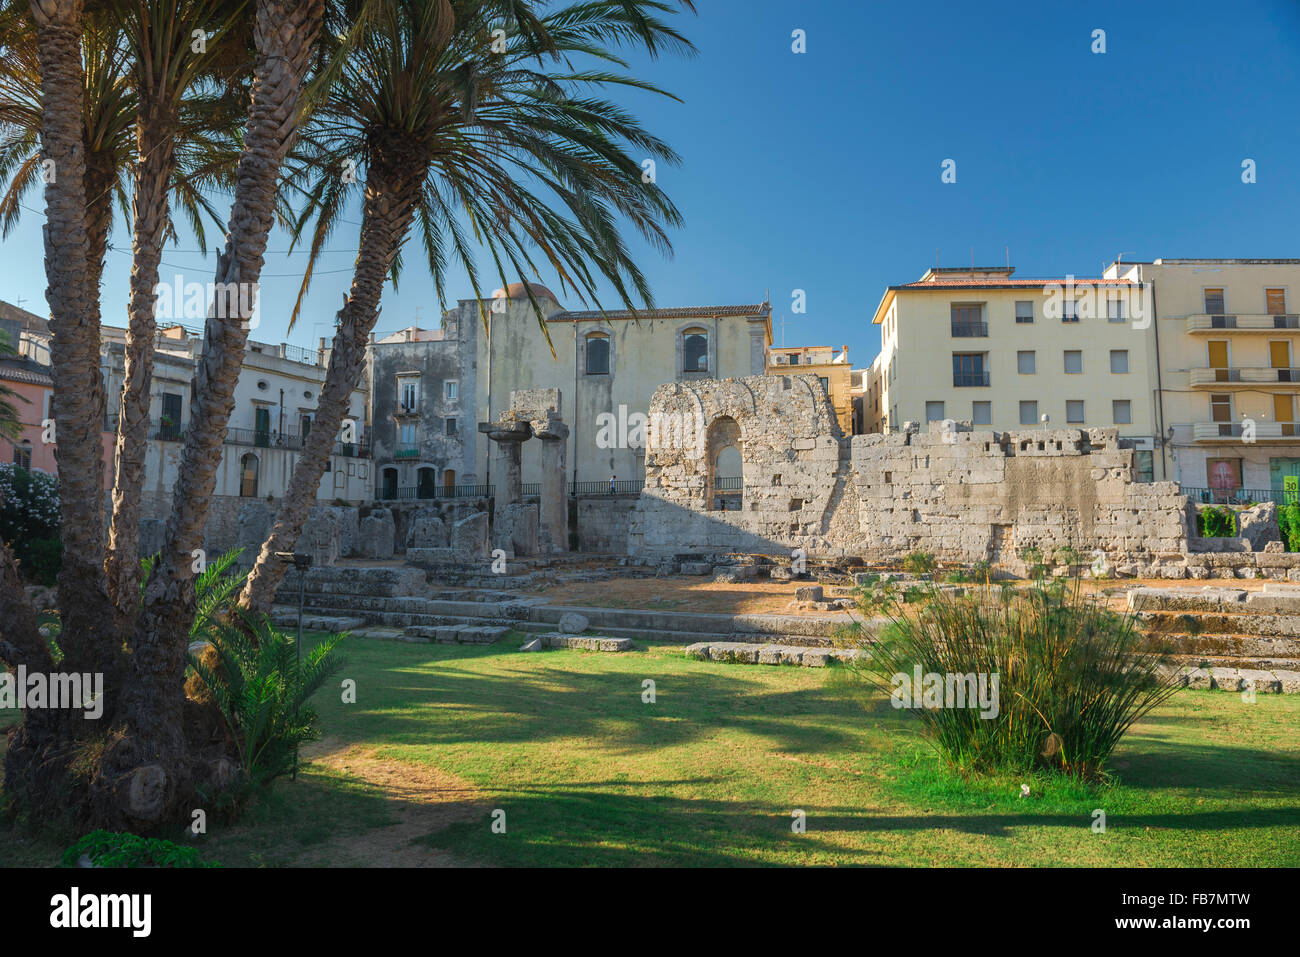 Sicile Syracuse ruines grecques, les vestiges de l'ancien temple grec d'Apollon dans le centre d'Ortigia, Photo Stock